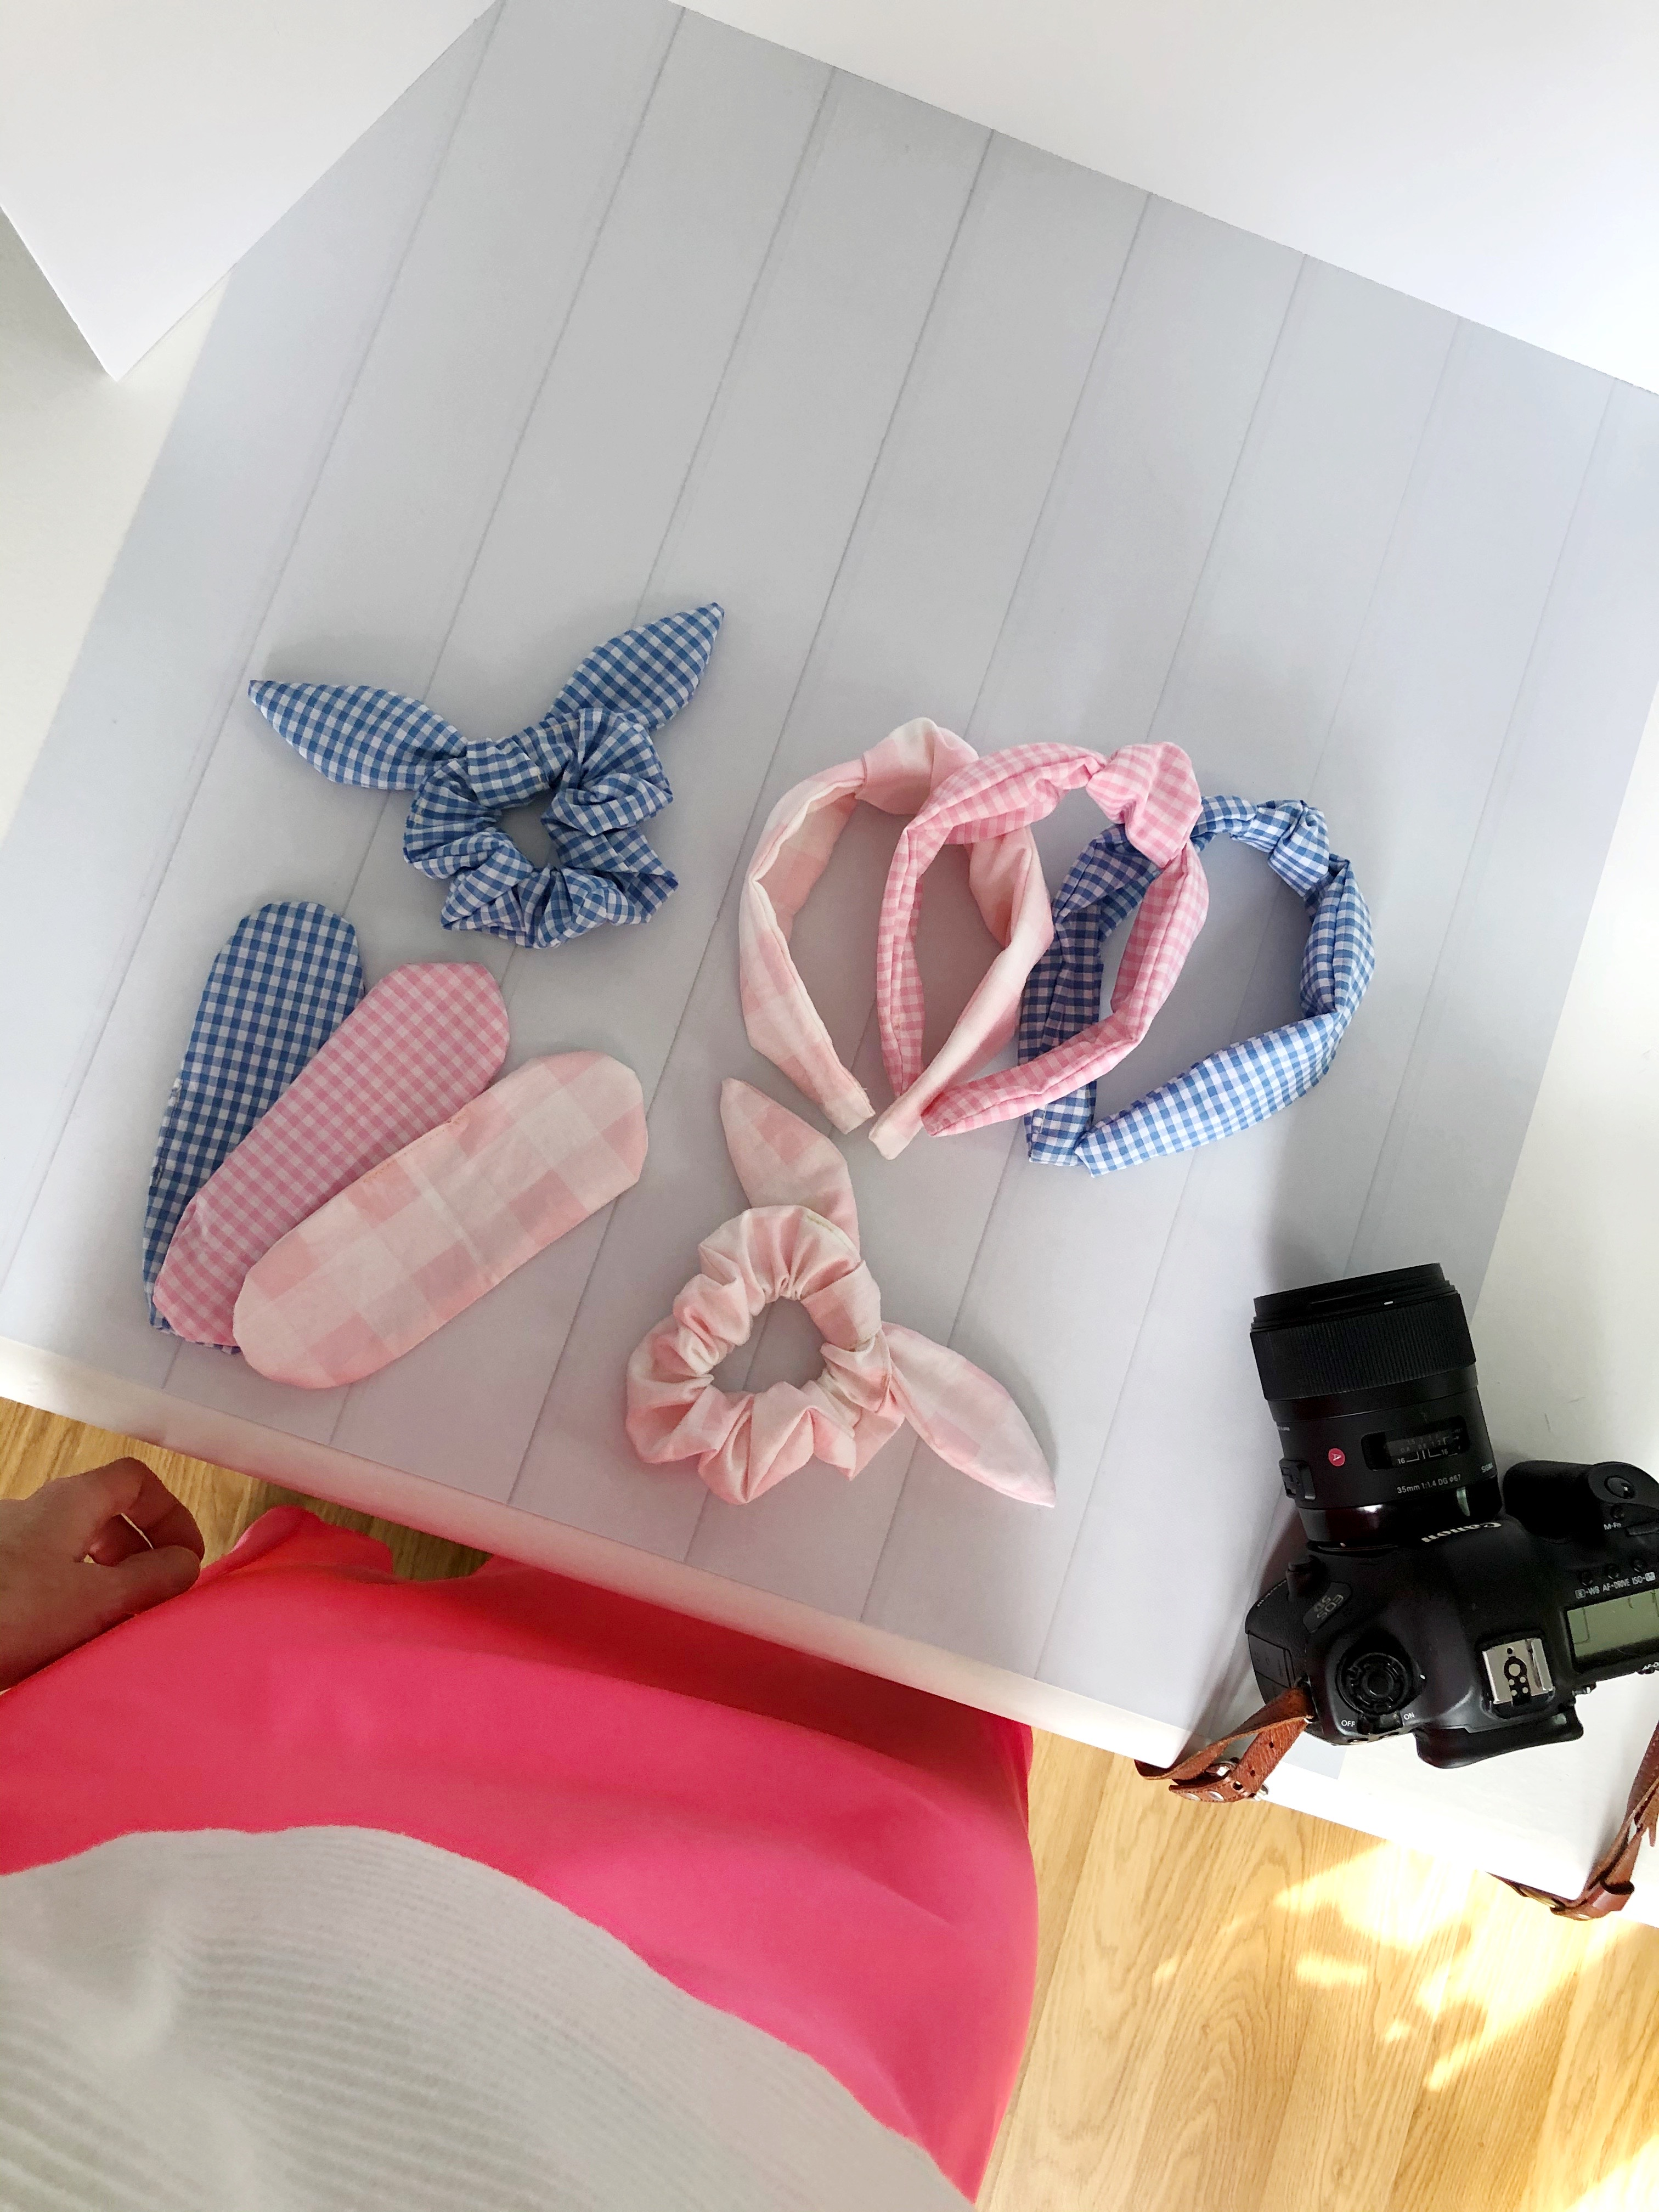 hair ties, headband, and a camera on a white table